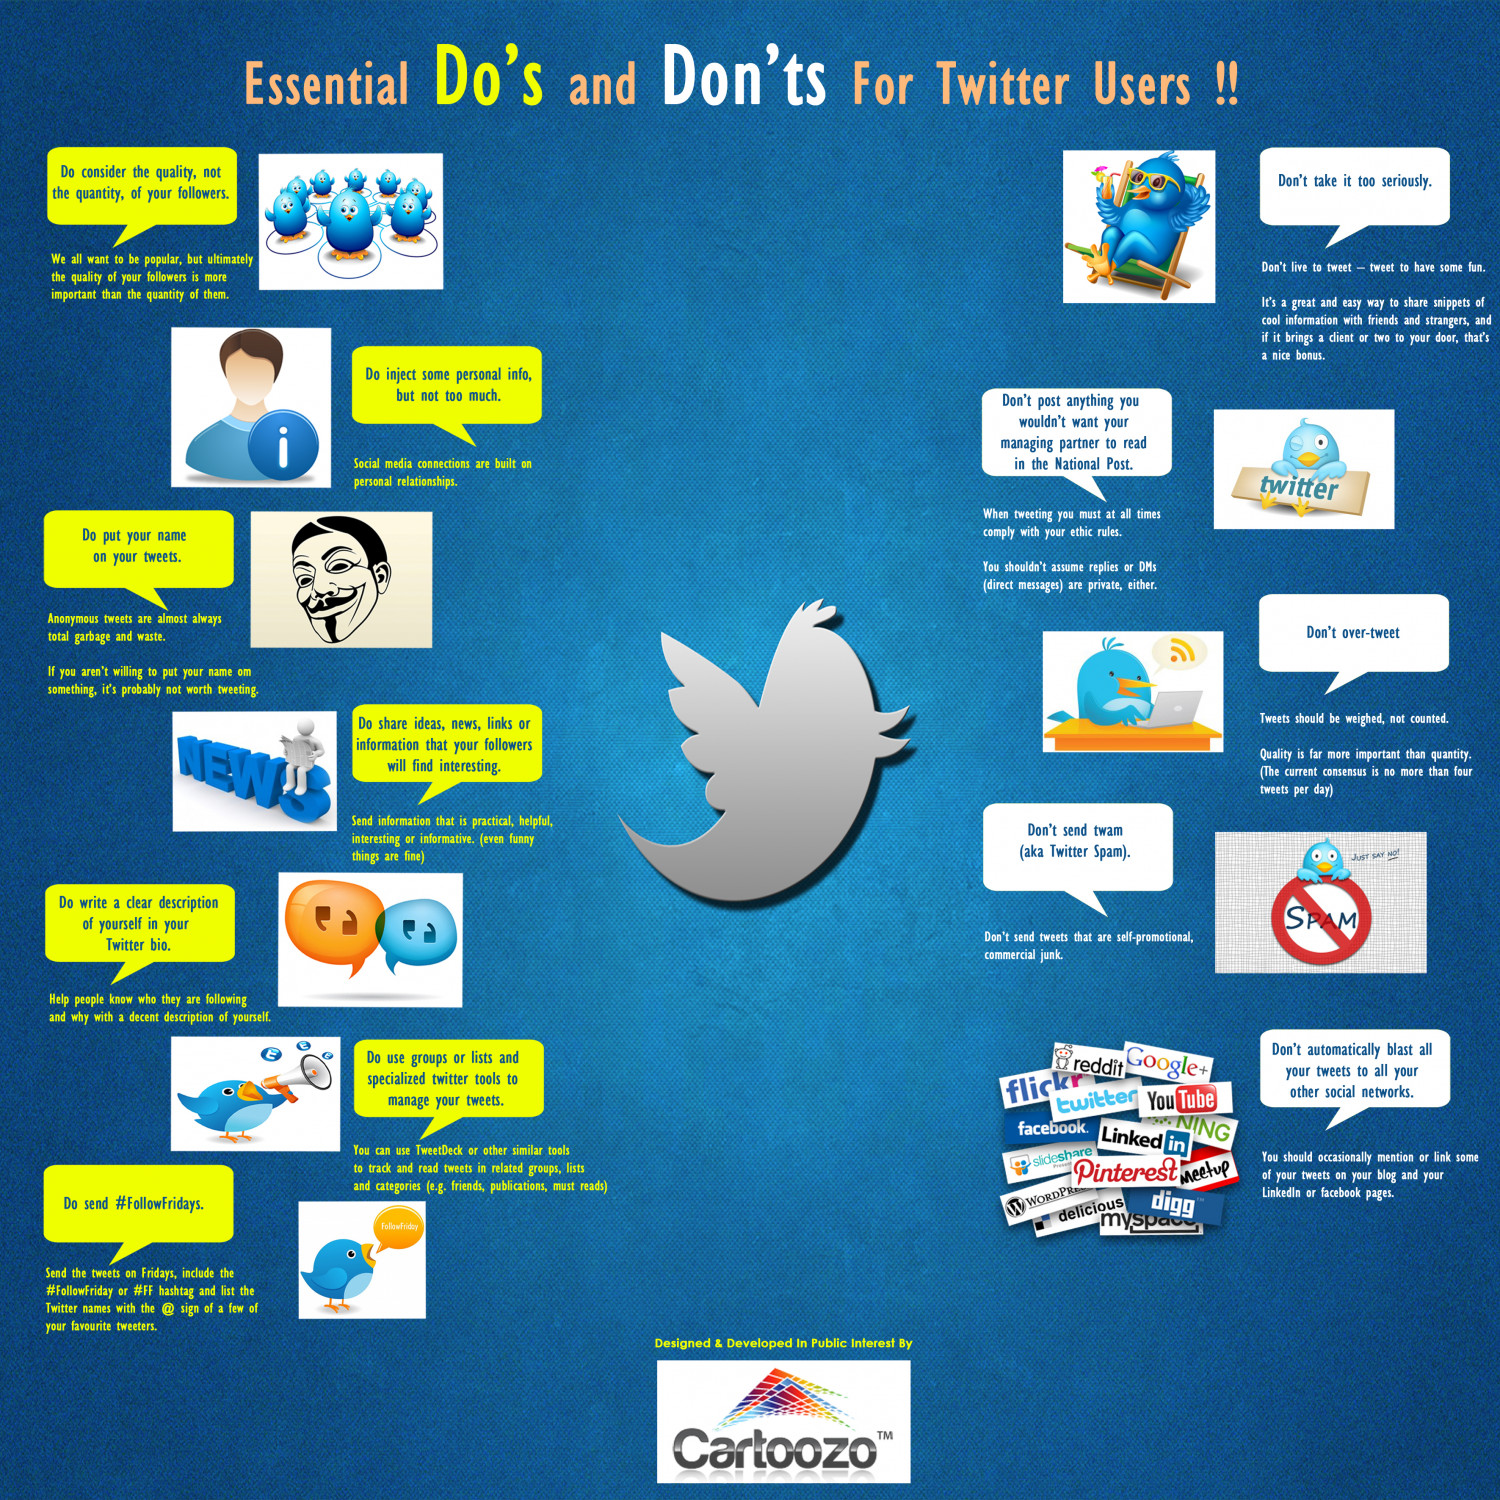 Essential Dos and Don'ts for Twitter Users Infographic